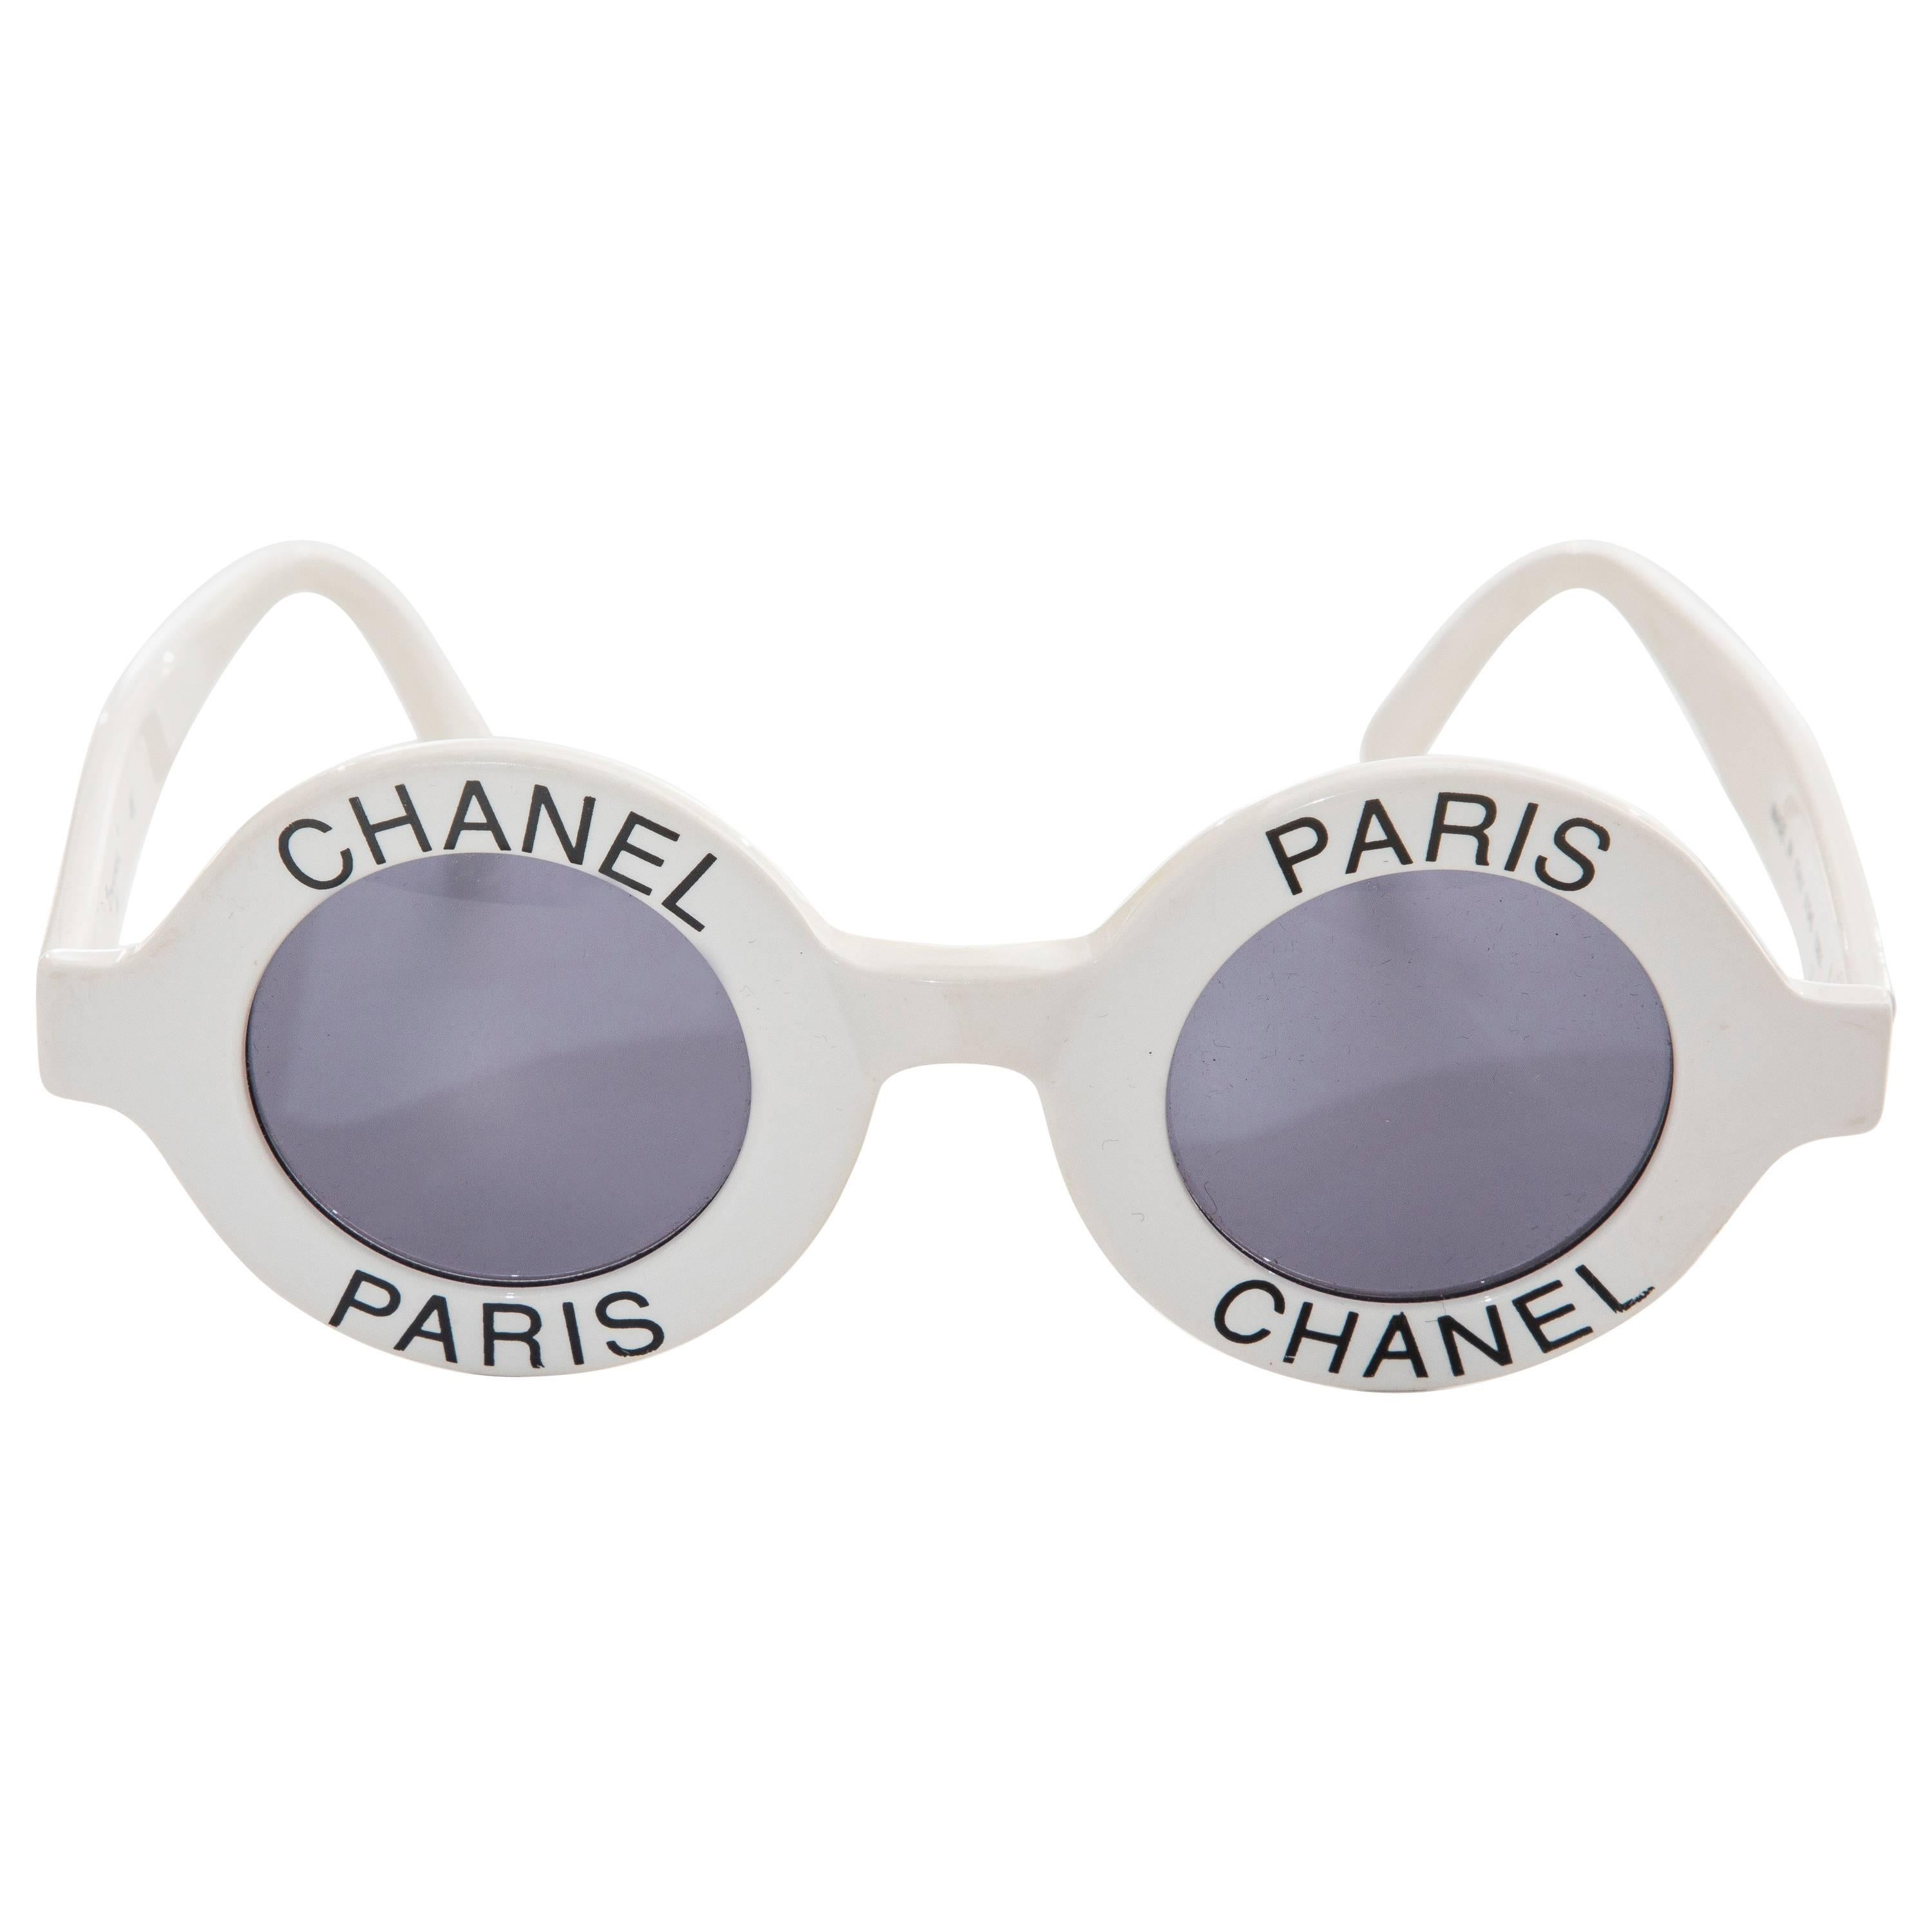 85b5e77d2 Vintage Chanel Sunglasses - 94 For Sale at 1stdibs